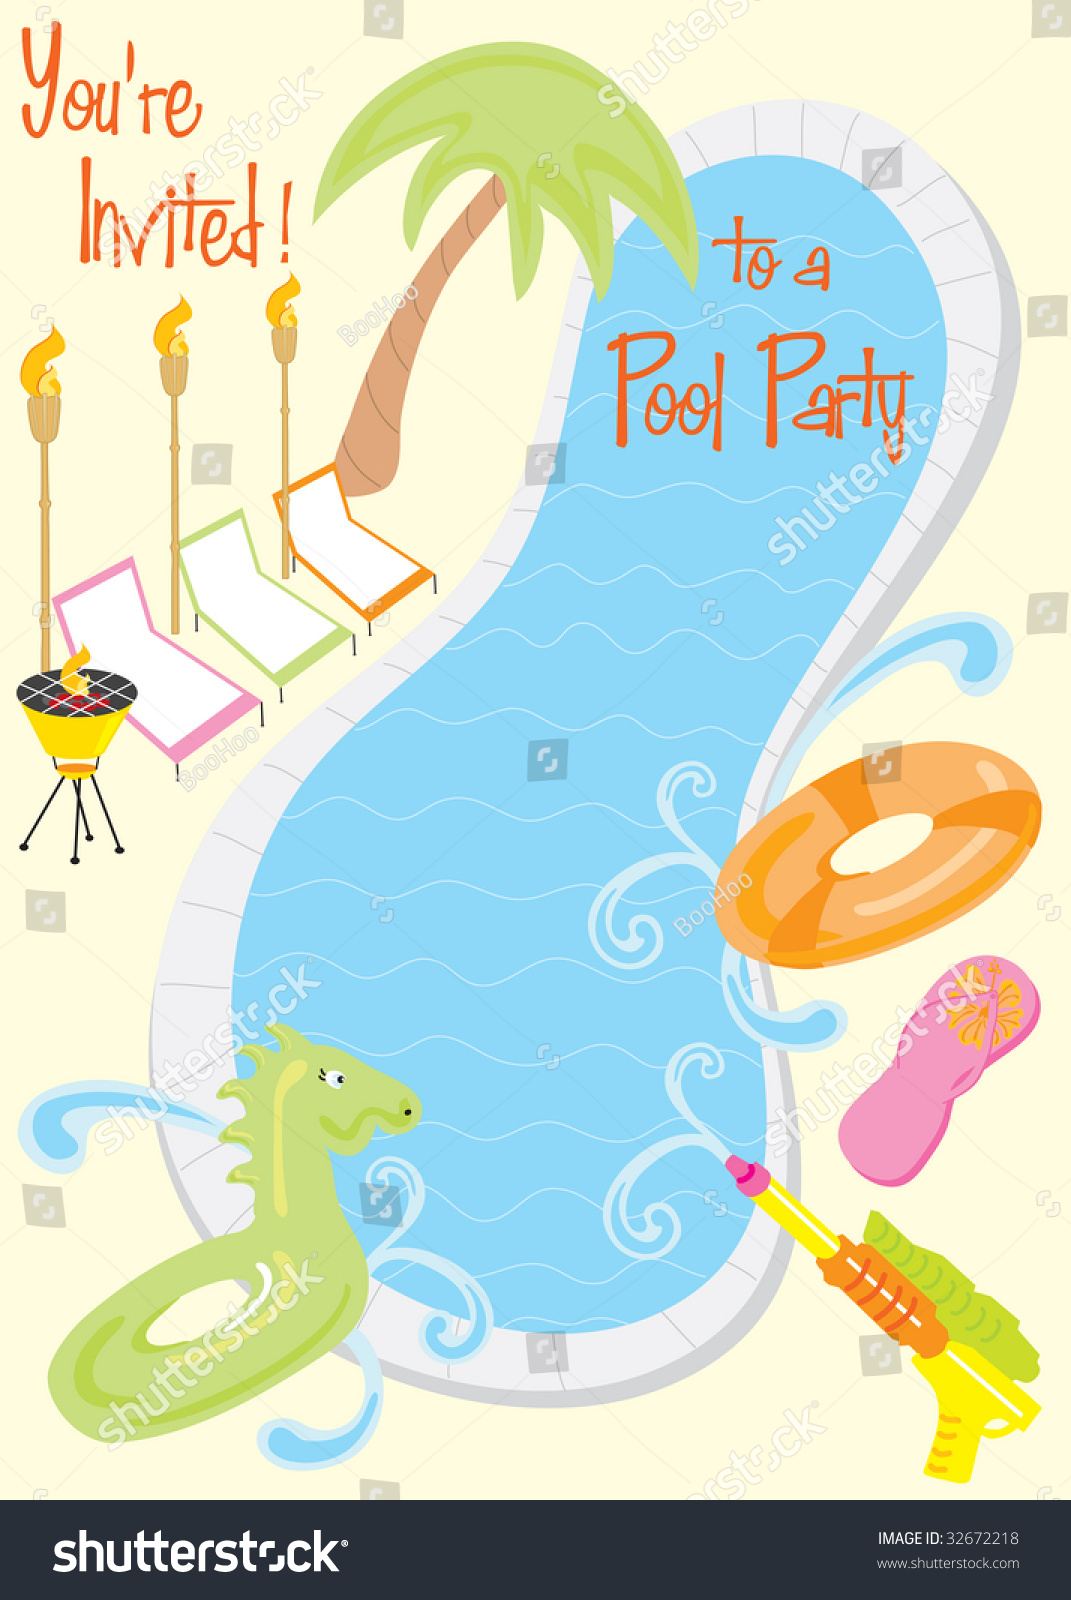 summer pool party invitation kids fun stock vector  summer pool party invitation for kids or fun adults room for your text